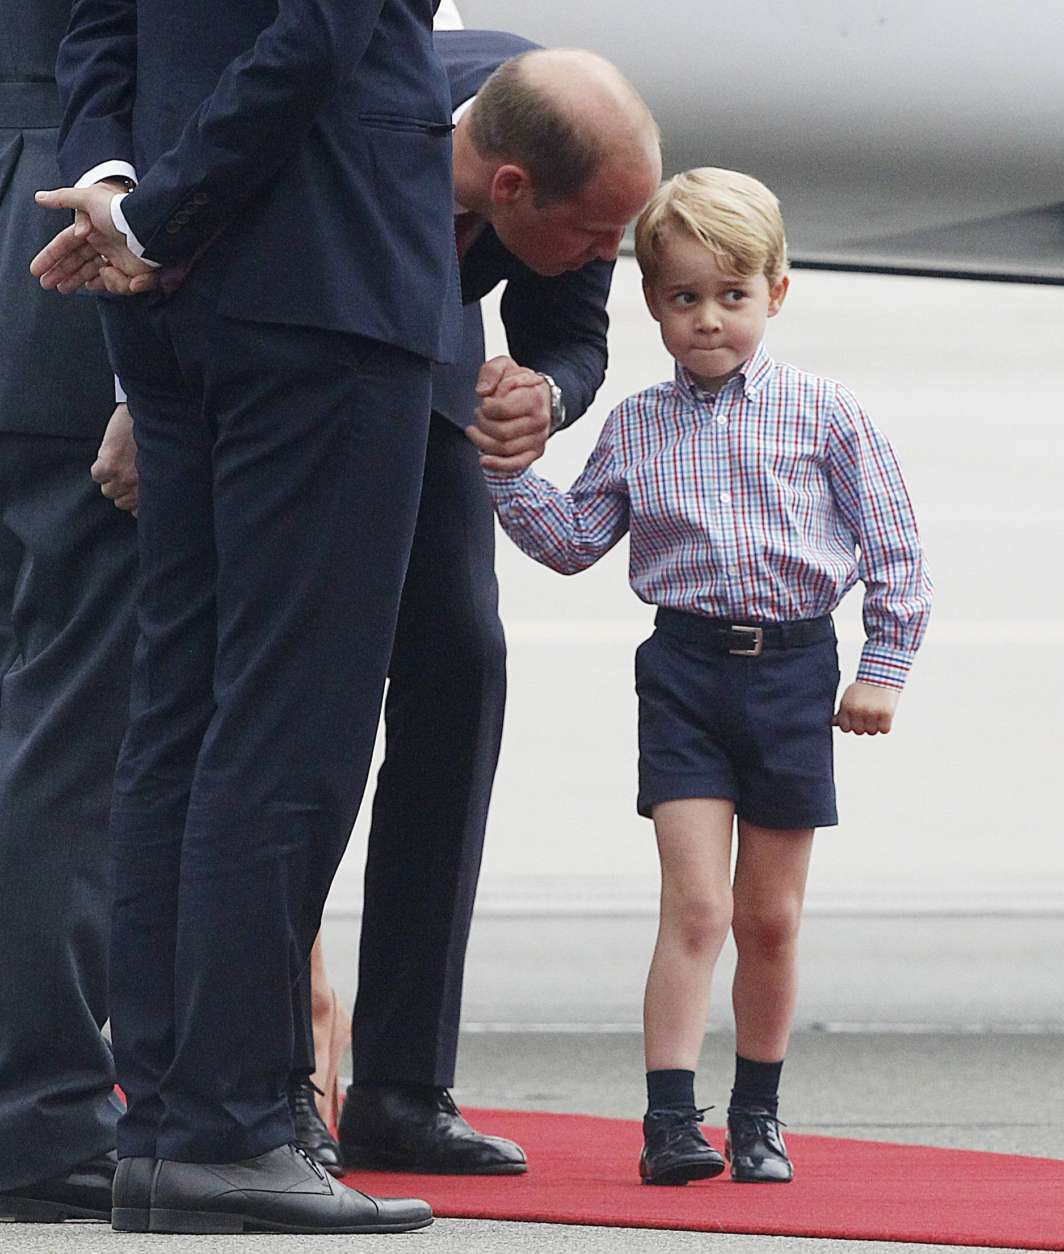 Britain's Prince William, left, holds the hand of his son Prince George on arrival at the airport, in Warsaw, Poland, Monday, July 17, 2017. The Duke and Duchess of Cambridge and their children have arrived in Poland, the first leg of a goodwill trip to two European Union nations that seeks to underscore Britain's friendly ties despite its negotiations to leave the bloc. (AP Photo/Czarek Sokolowski)